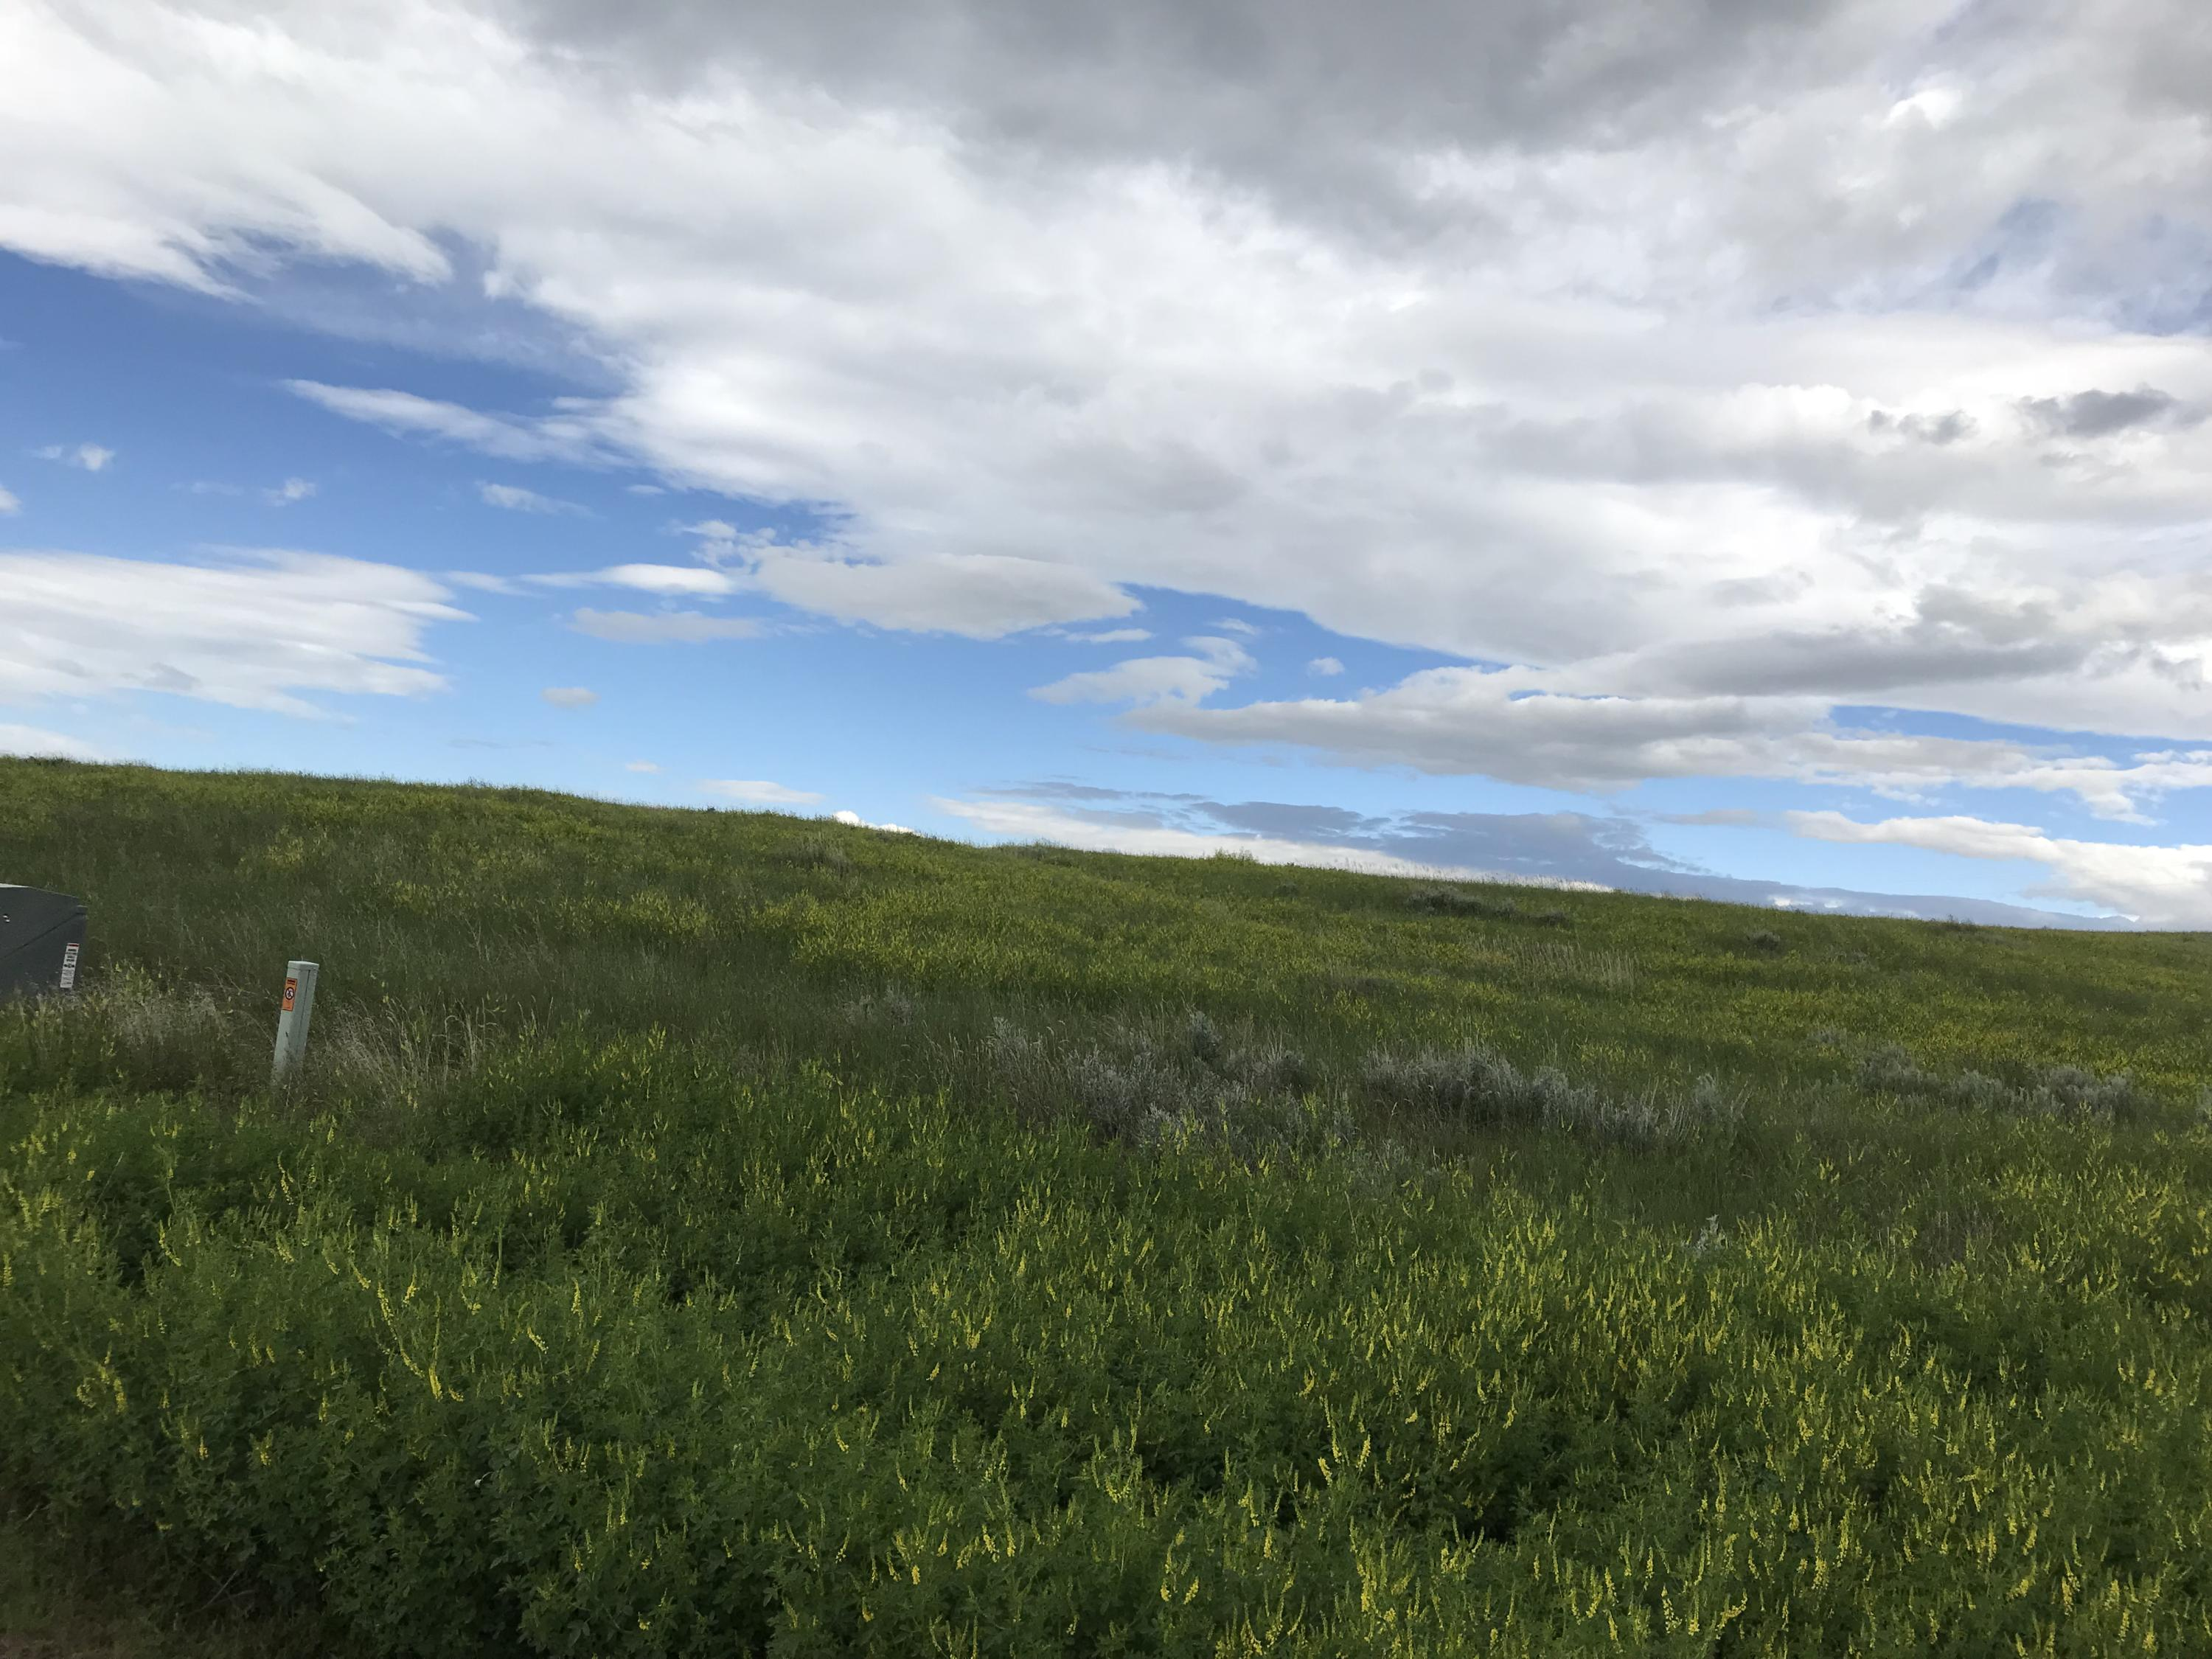 Lot 15 TBD, Buffalo, Wyoming 82834, ,Building Site,For Sale,TBD,17-716